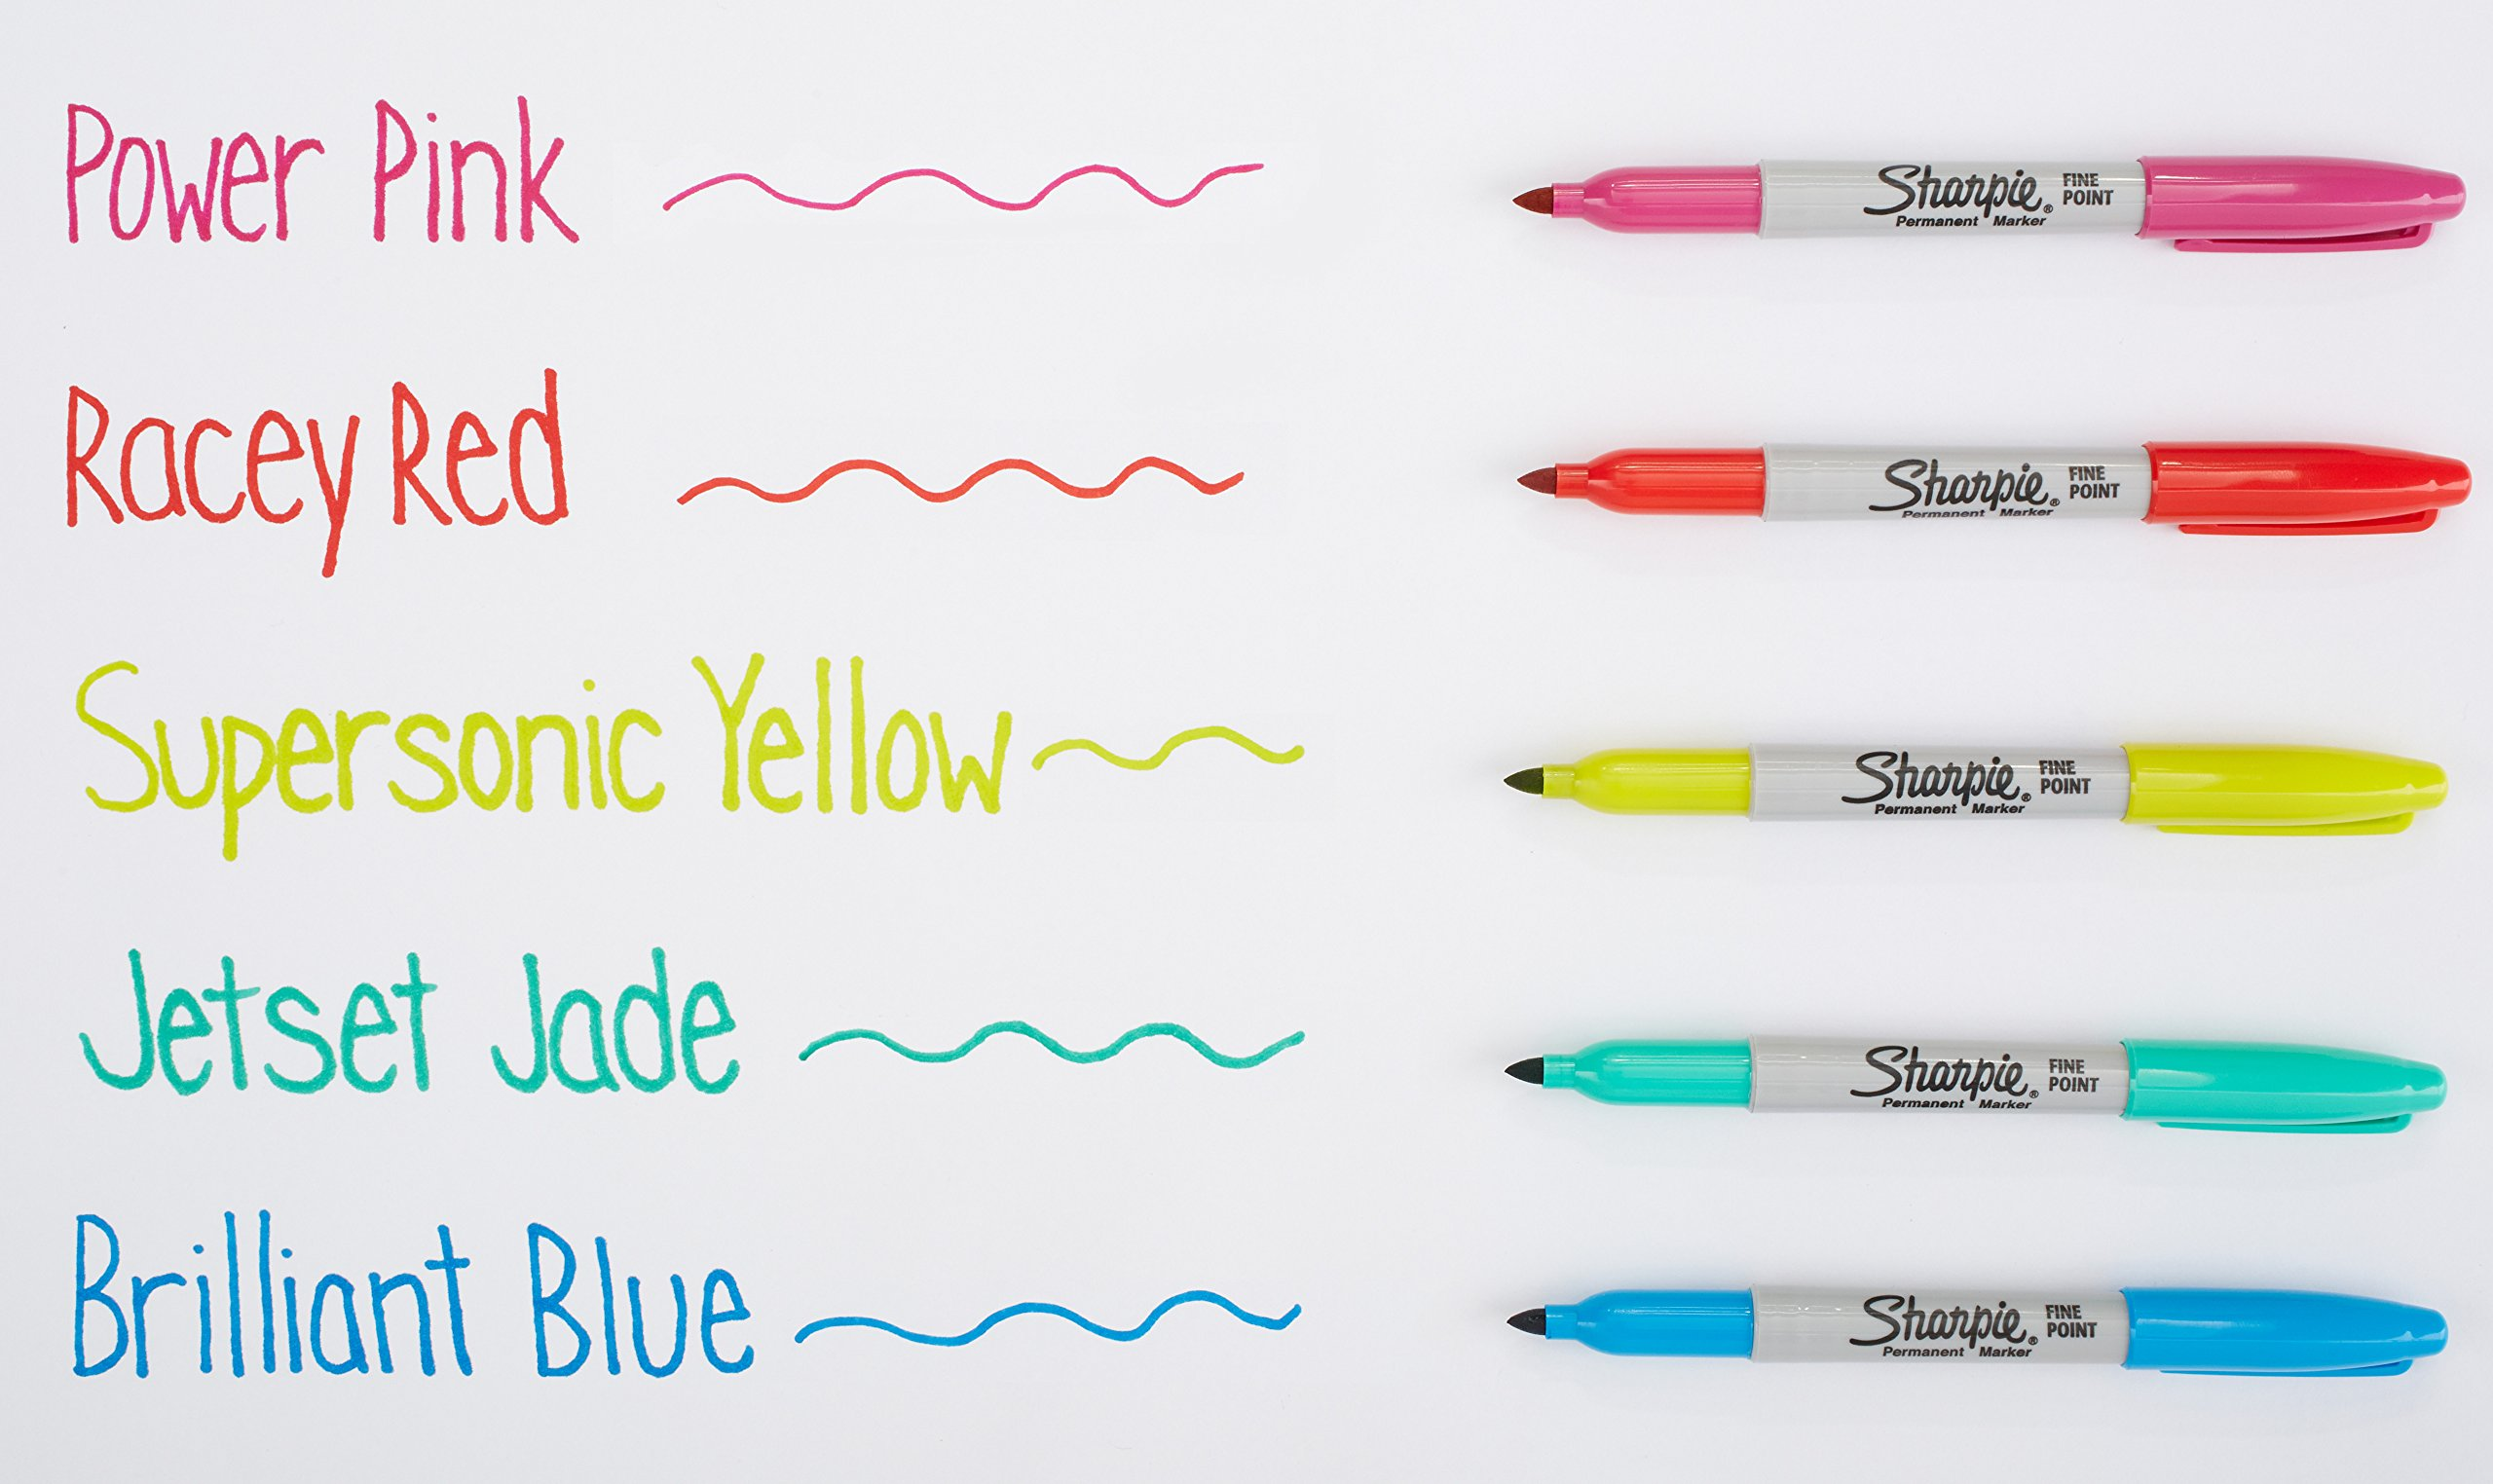 Sharpie Color Burst Permanent Markers, Fine Point, Assorted Colors, 24 Count by Sharpie (Image #5)